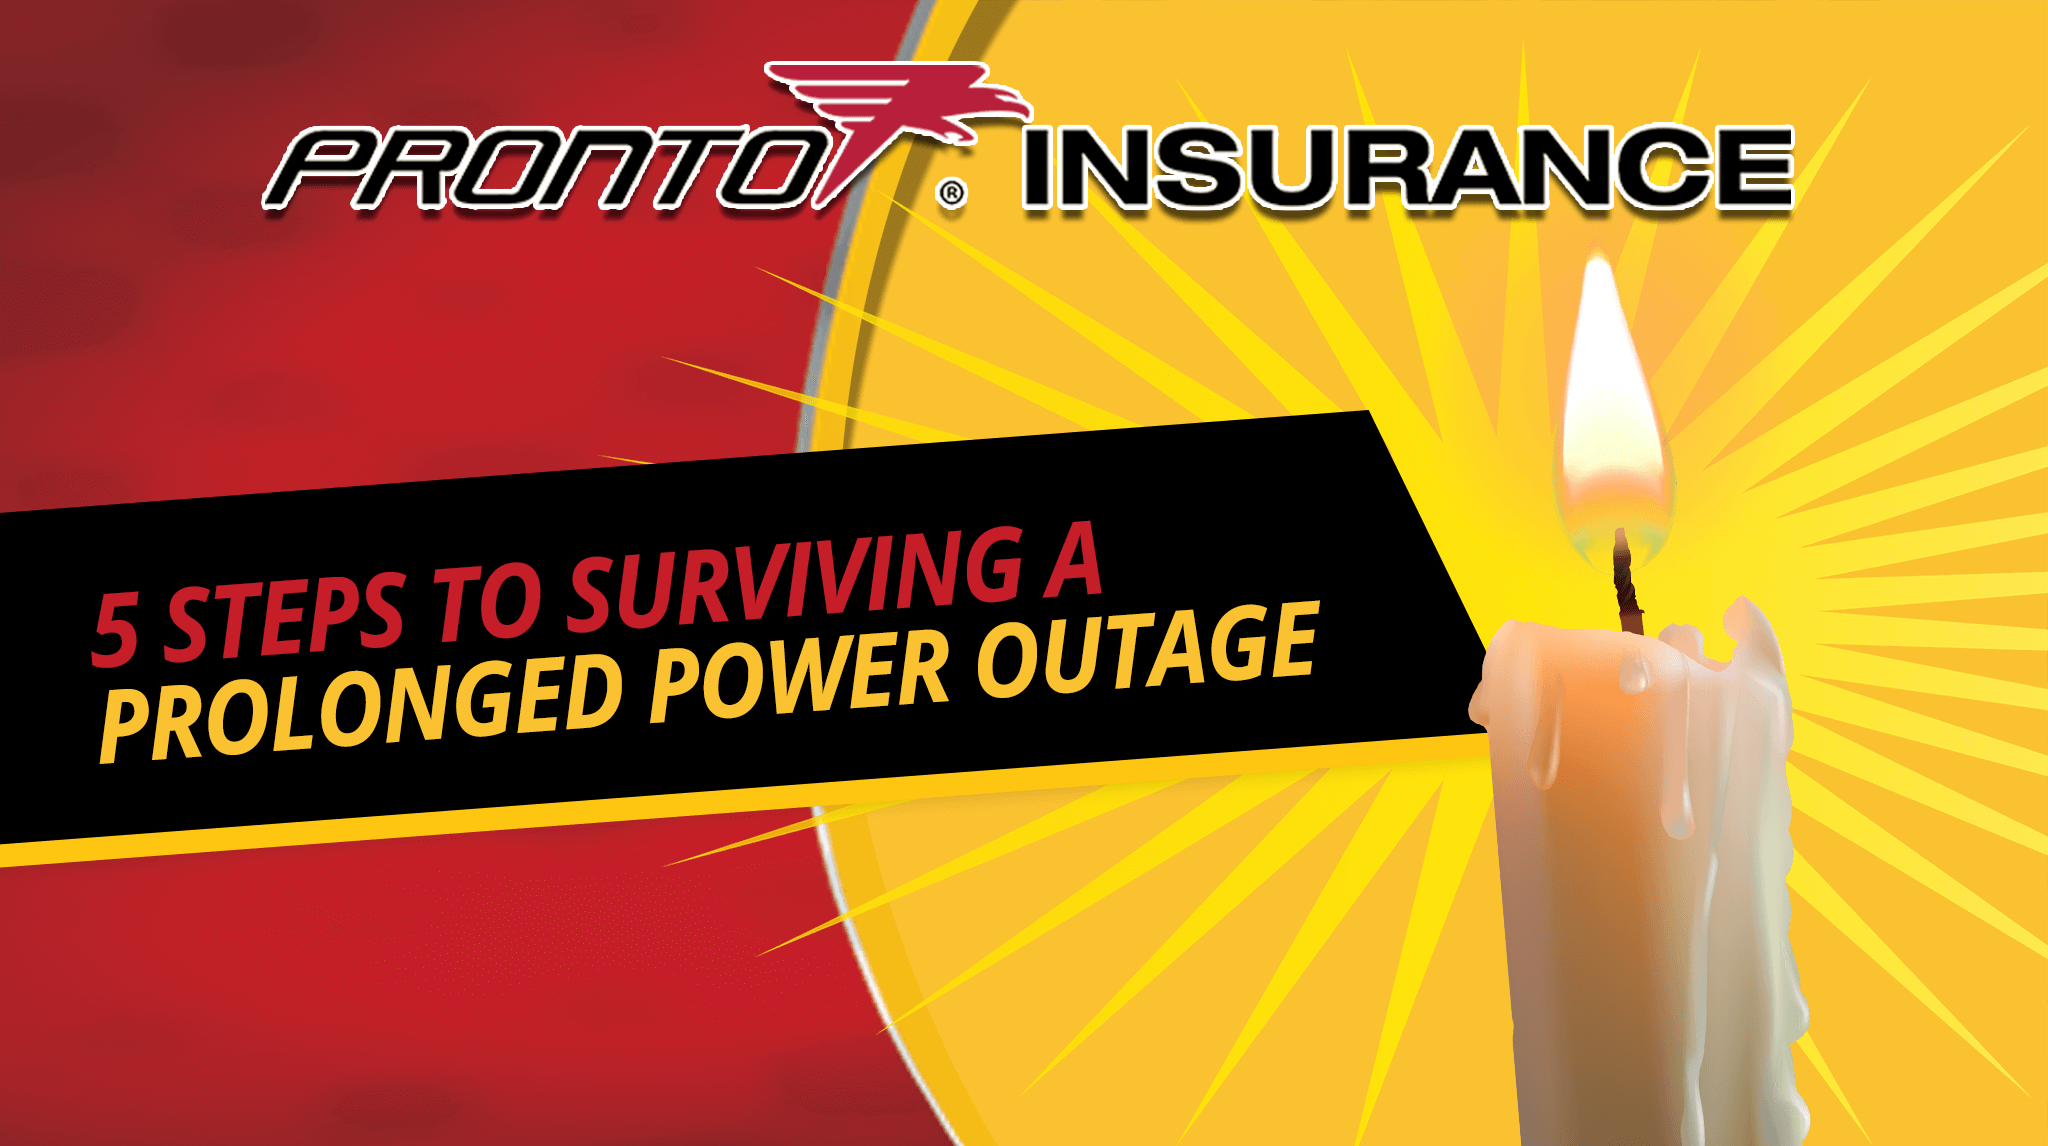 5 Steps to Surviving a Prolonged Power Outage